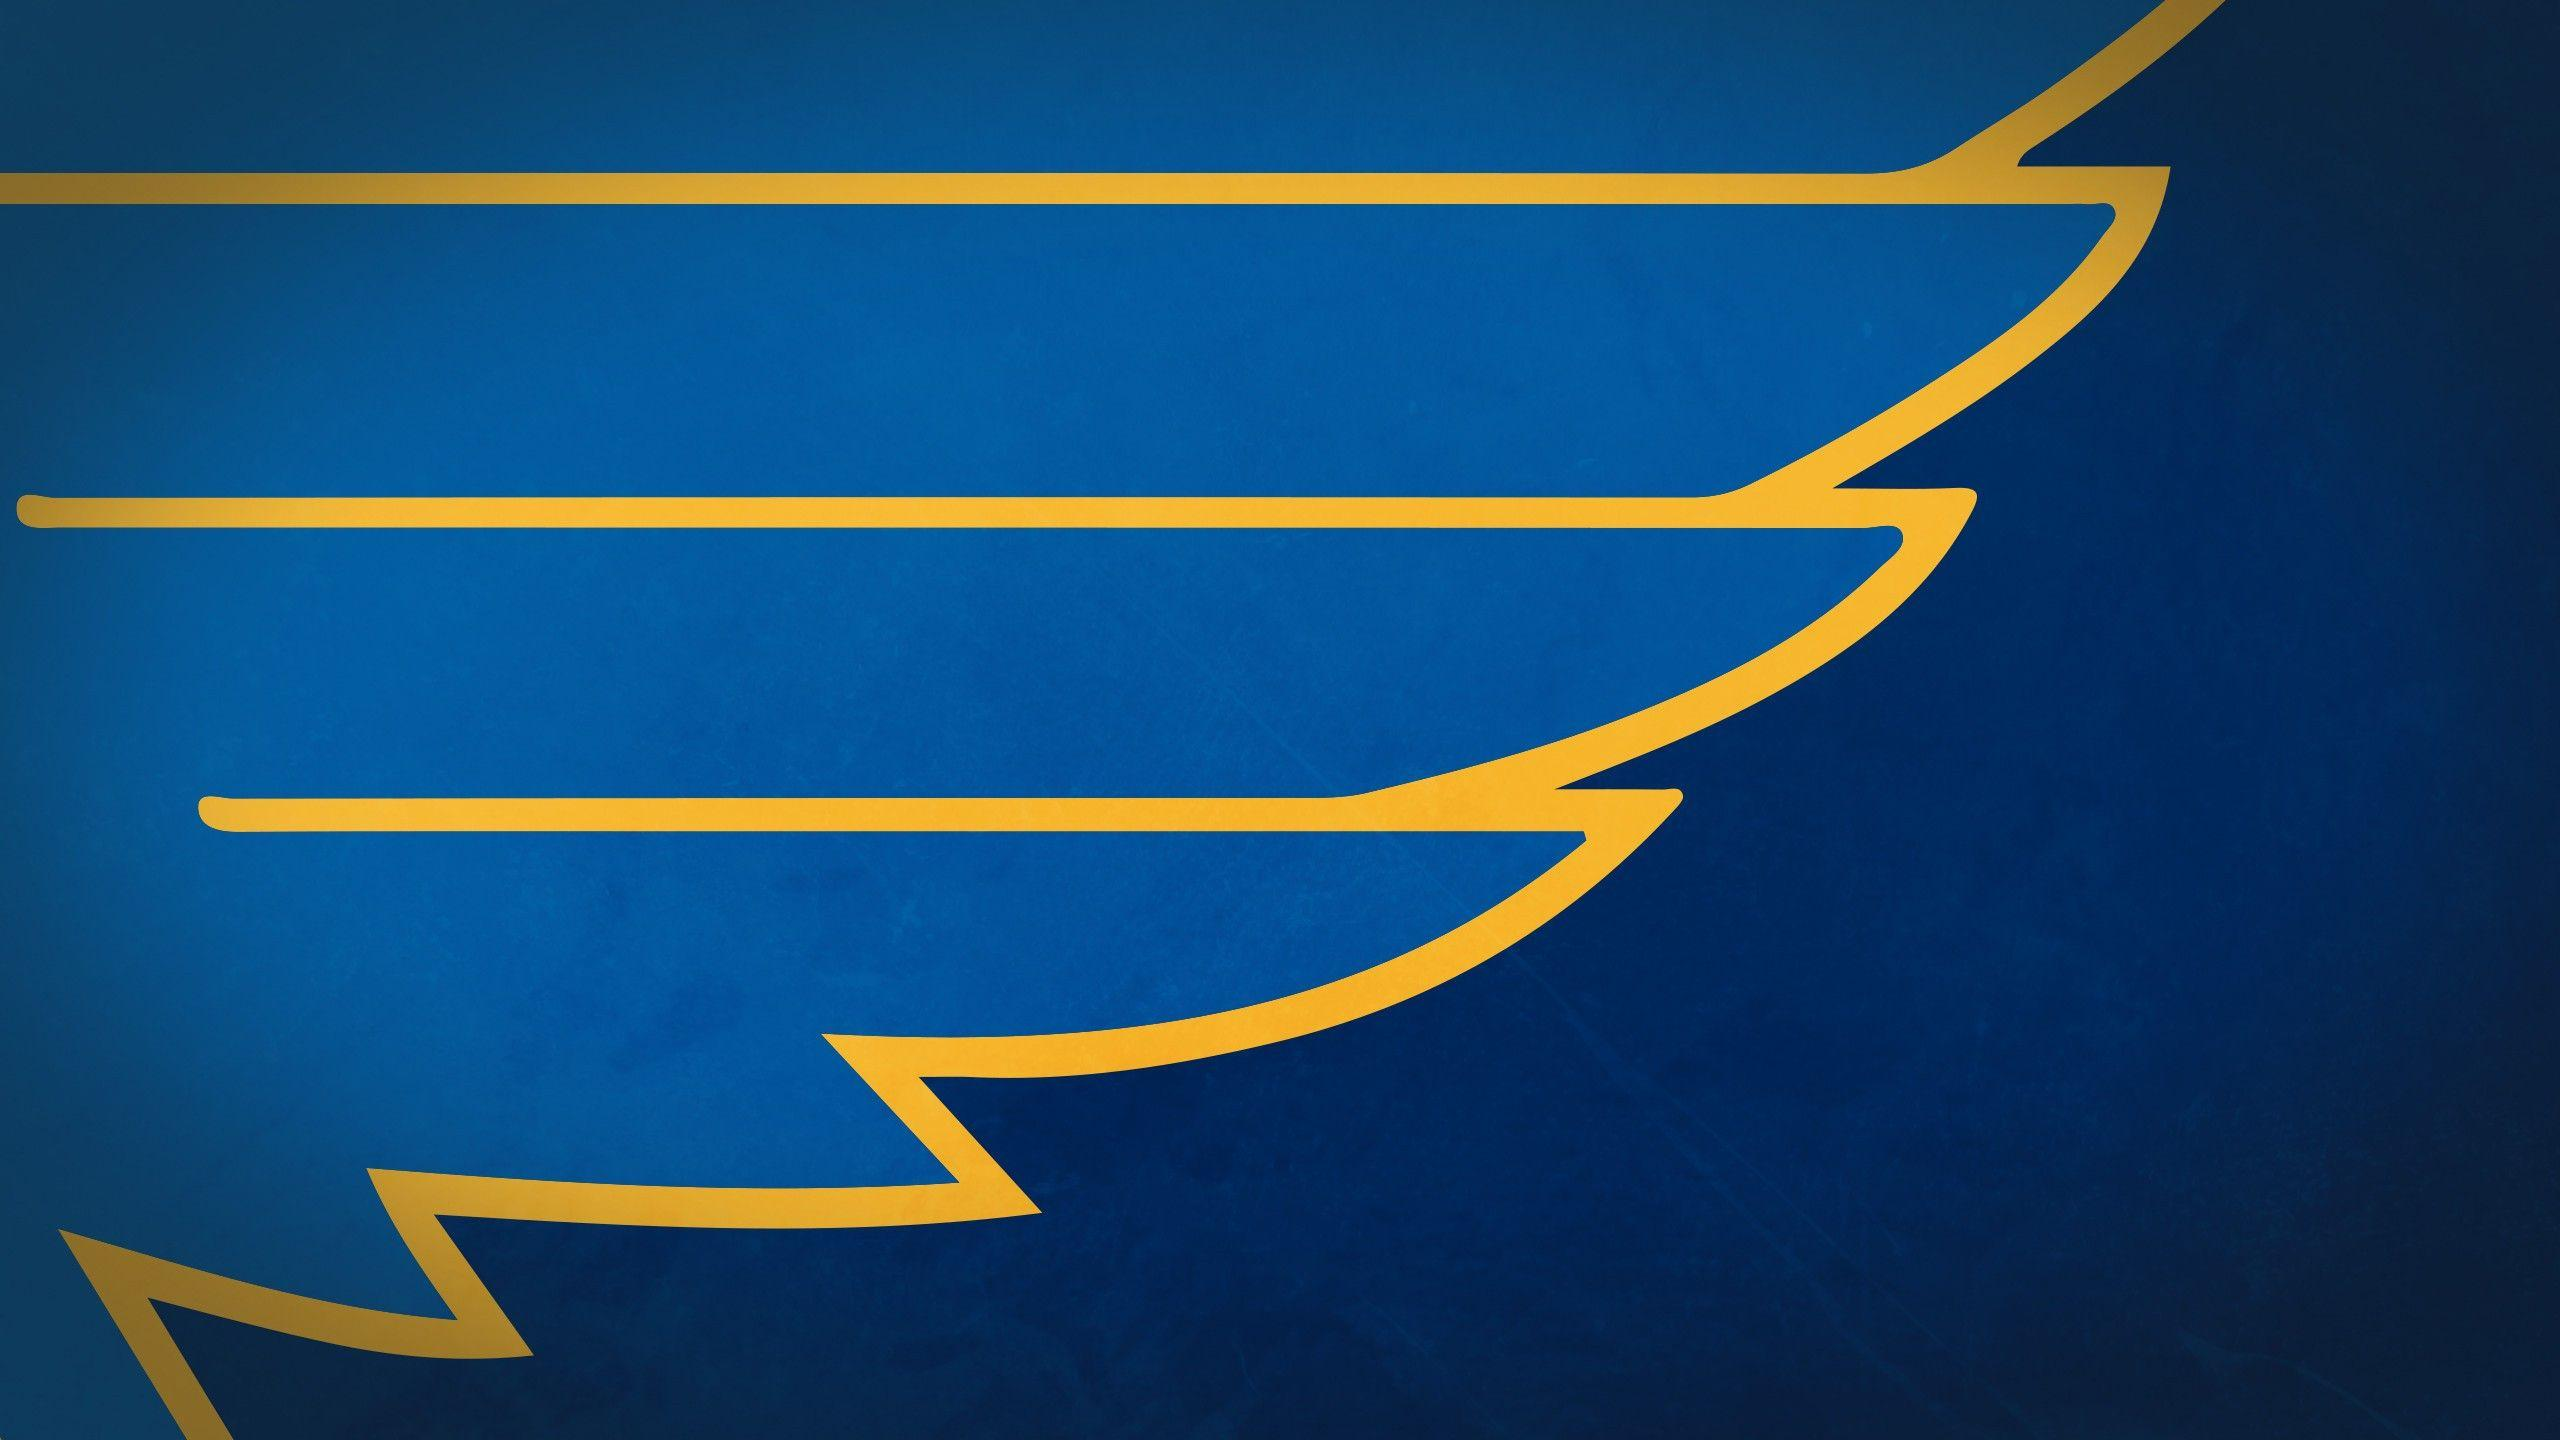 3 St. Louis Blues Wallpapers